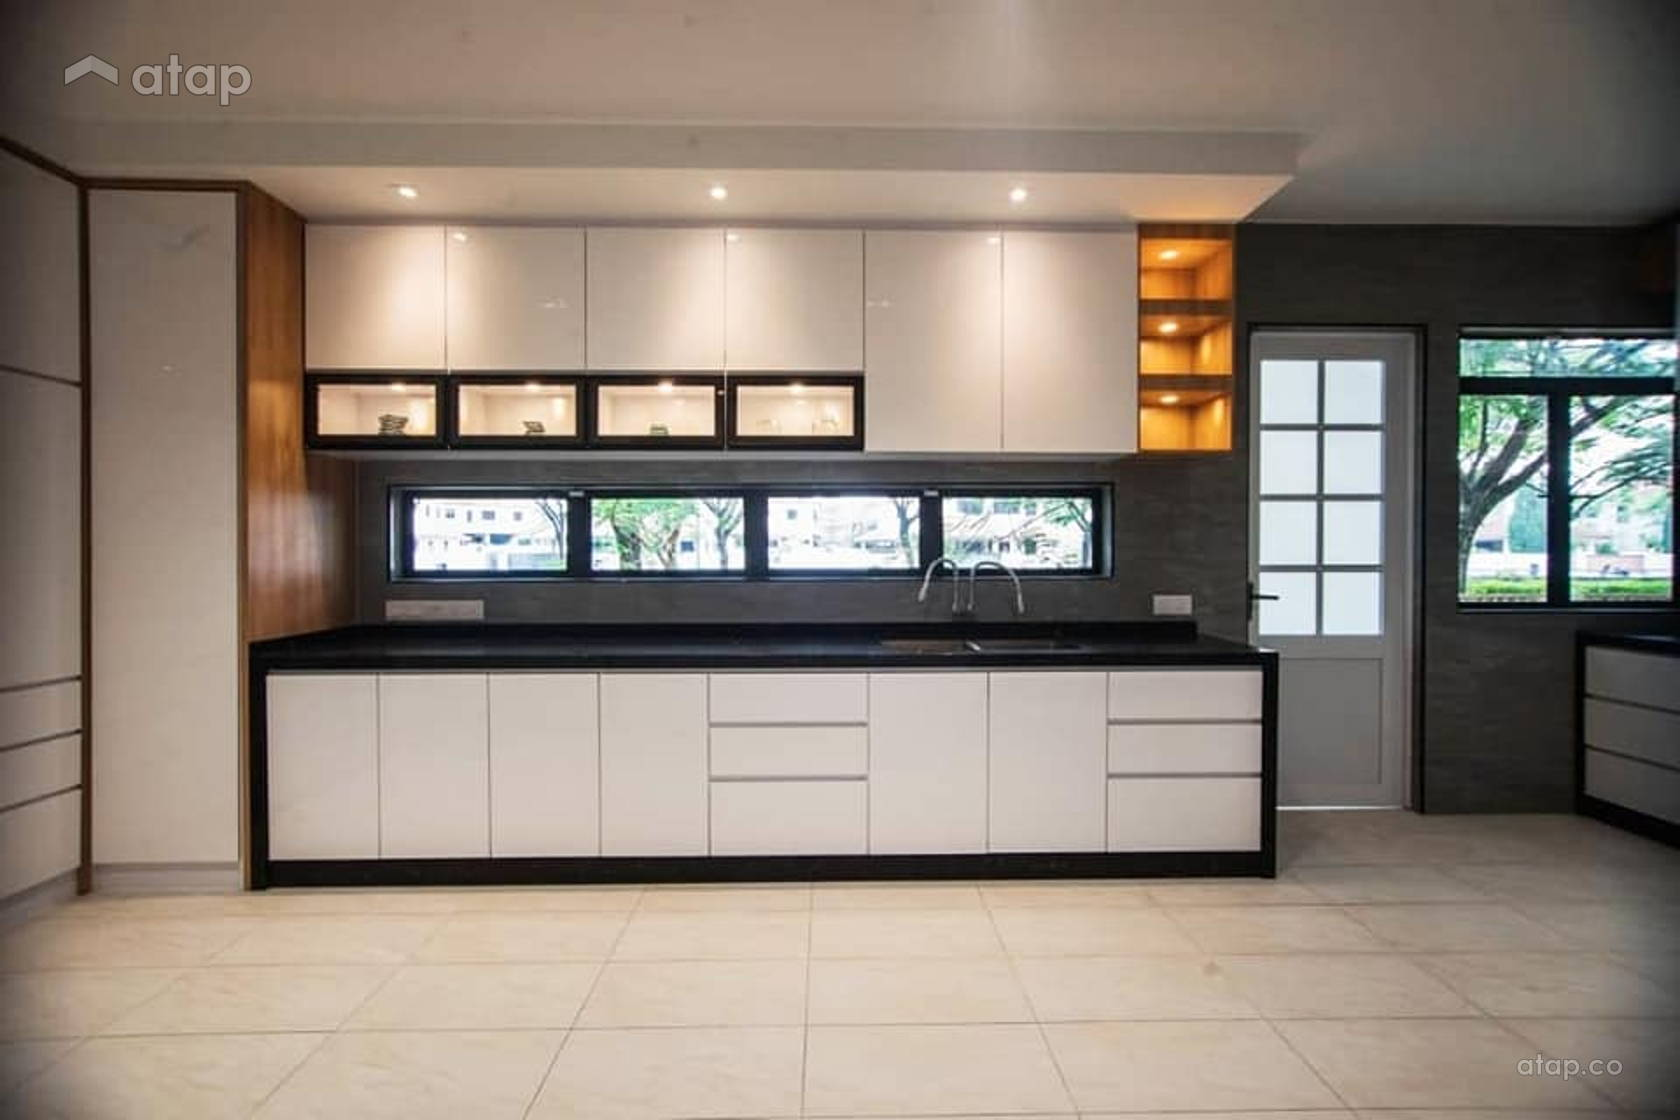 Not An Ordinary Kitchen Interior Design Renovation Ideas Photos And Price In Malaysia Atap Co